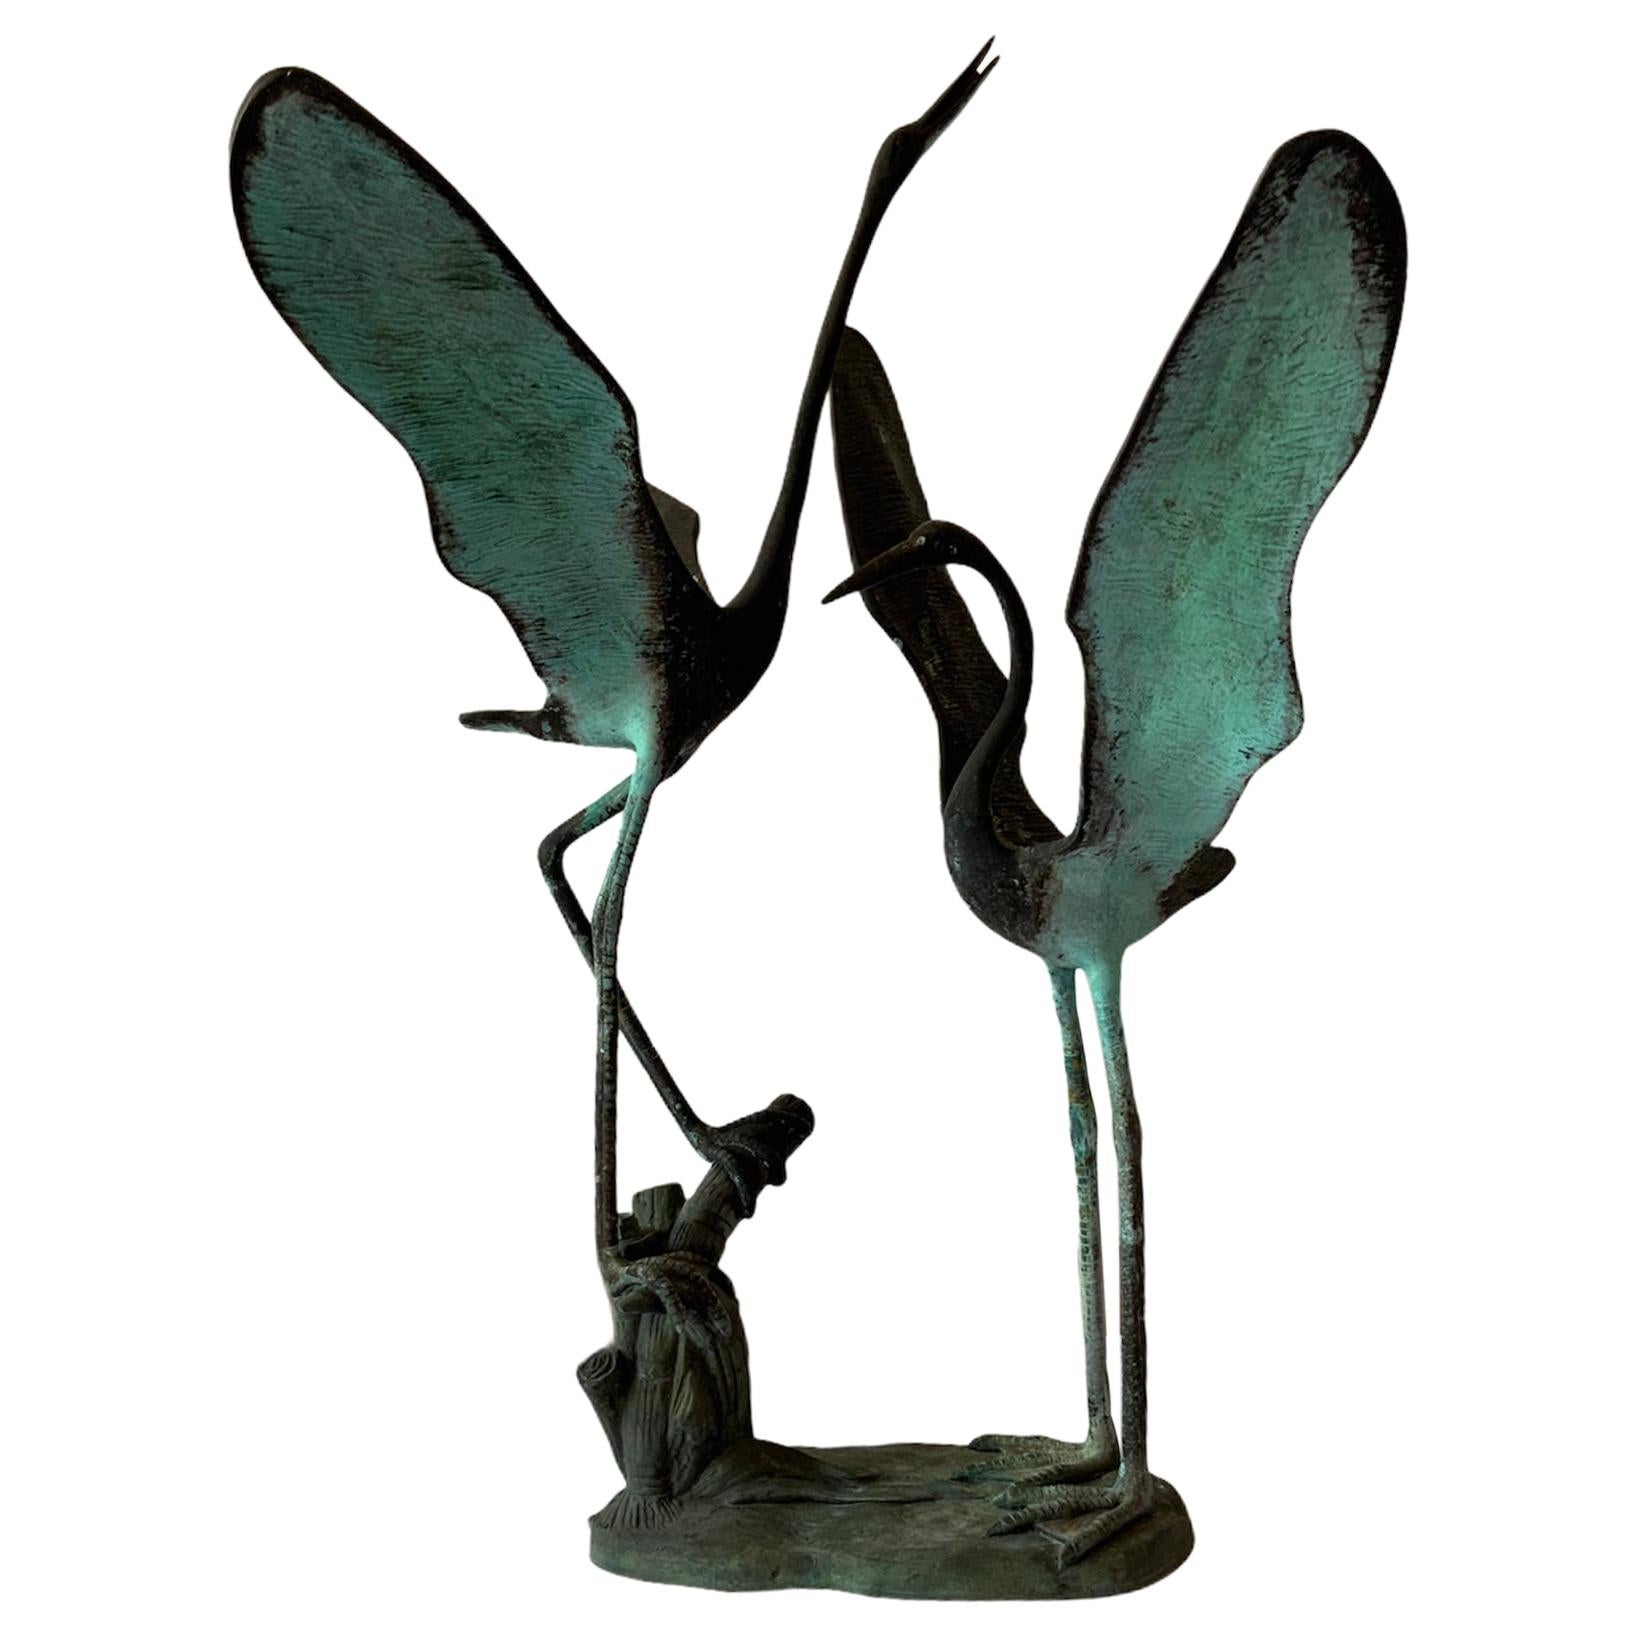 Almost Life Size Patinated Bronze Pair of Cranes Sculpture Fountain